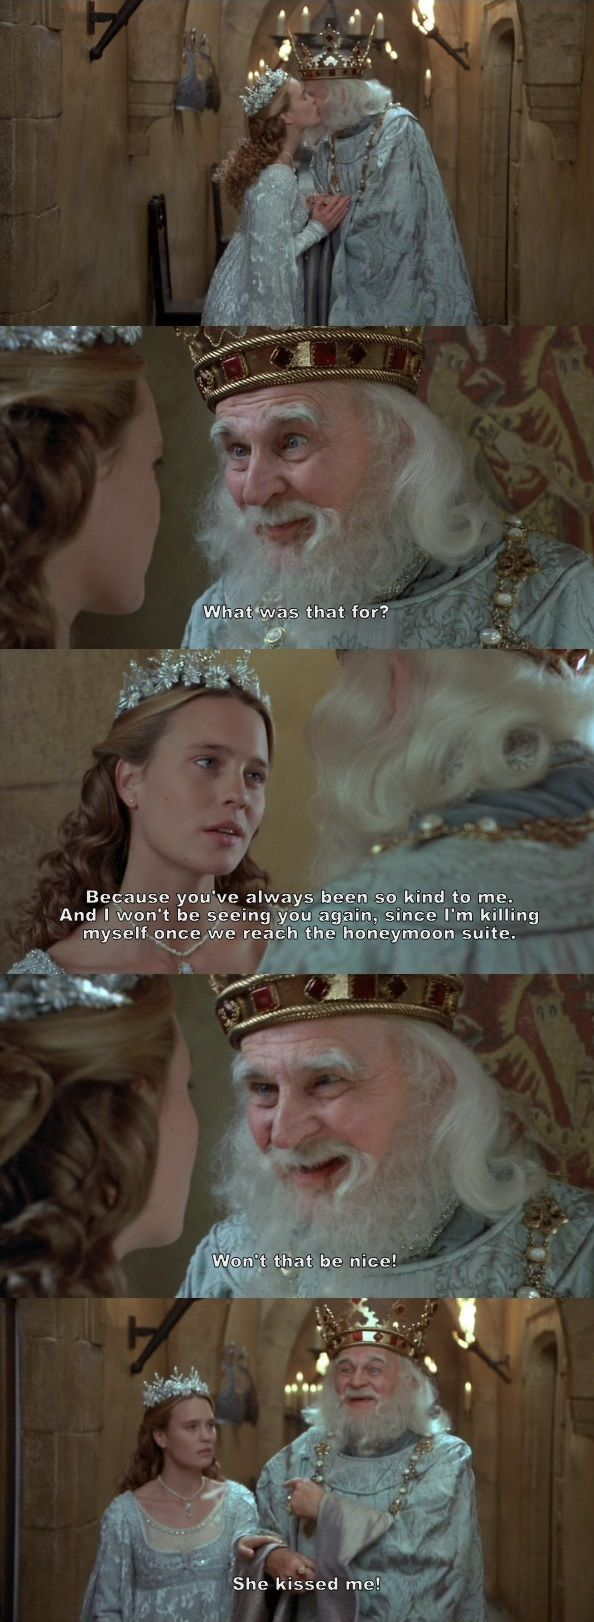 Scenes like this one make me wonder how anyone could NOT like The Princess Bride.